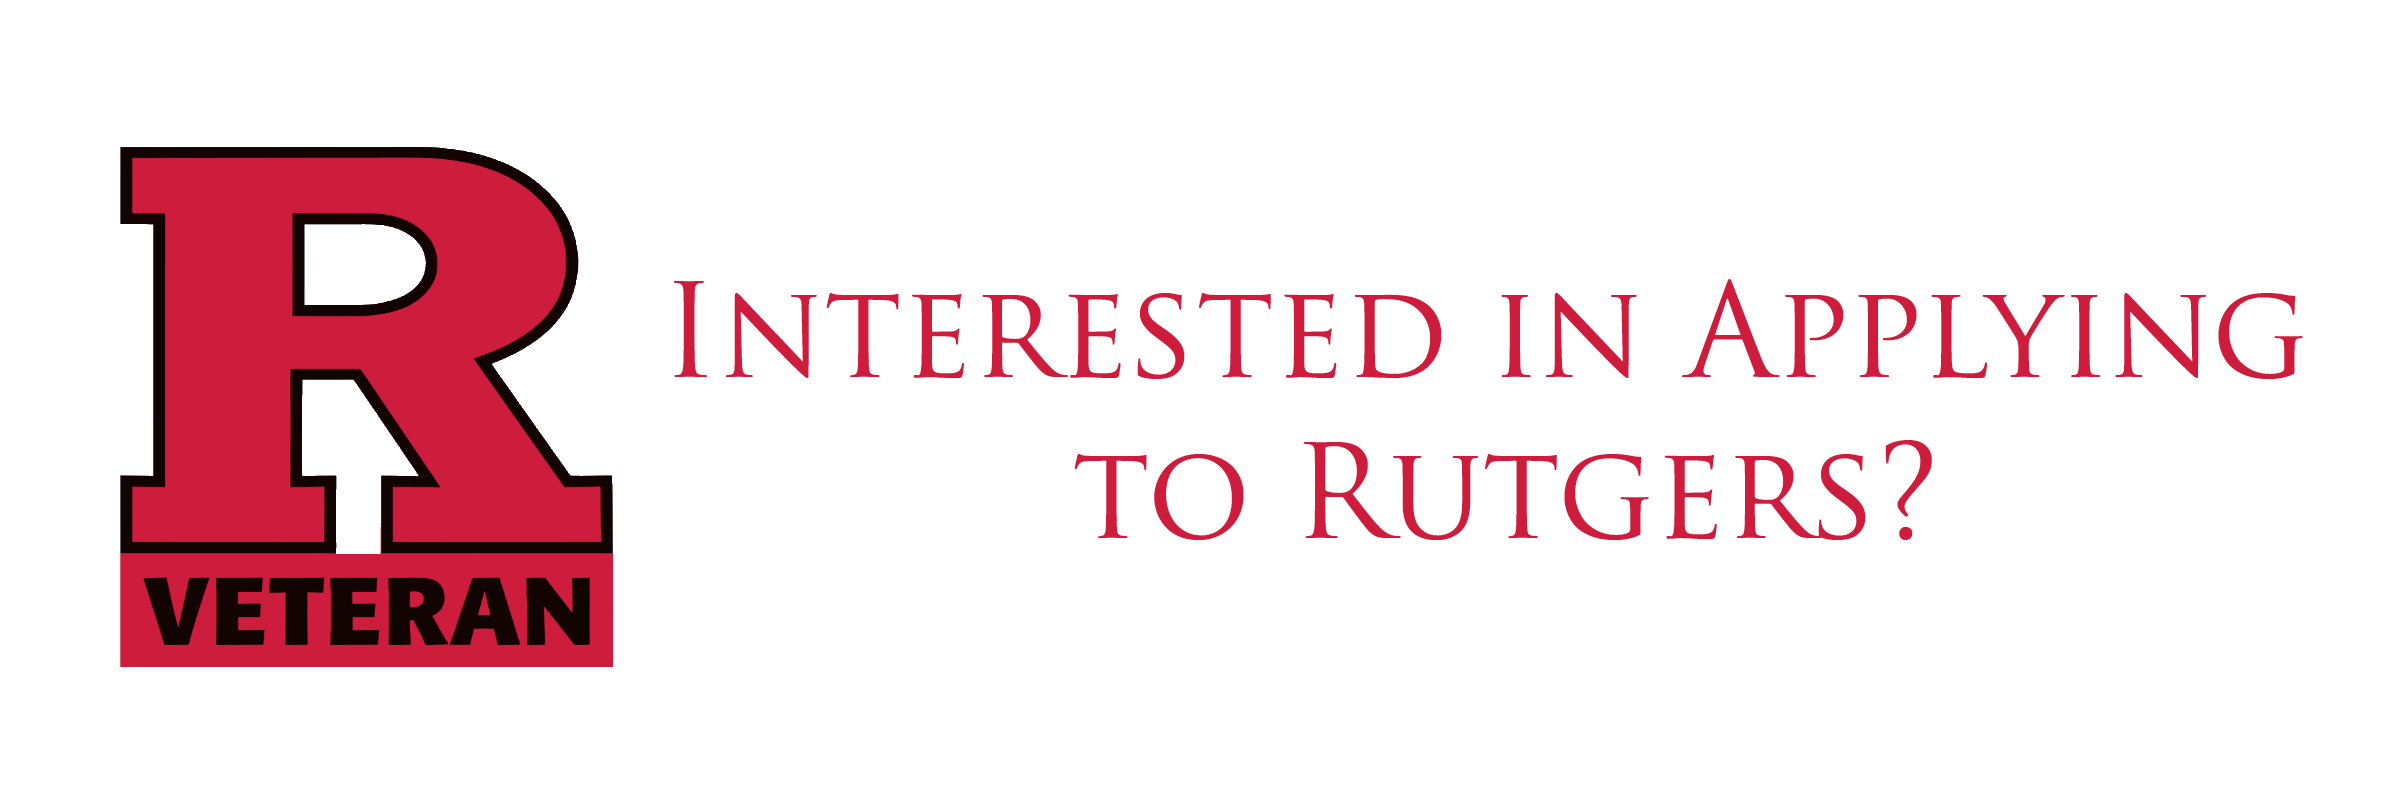 apply-to-rutgers